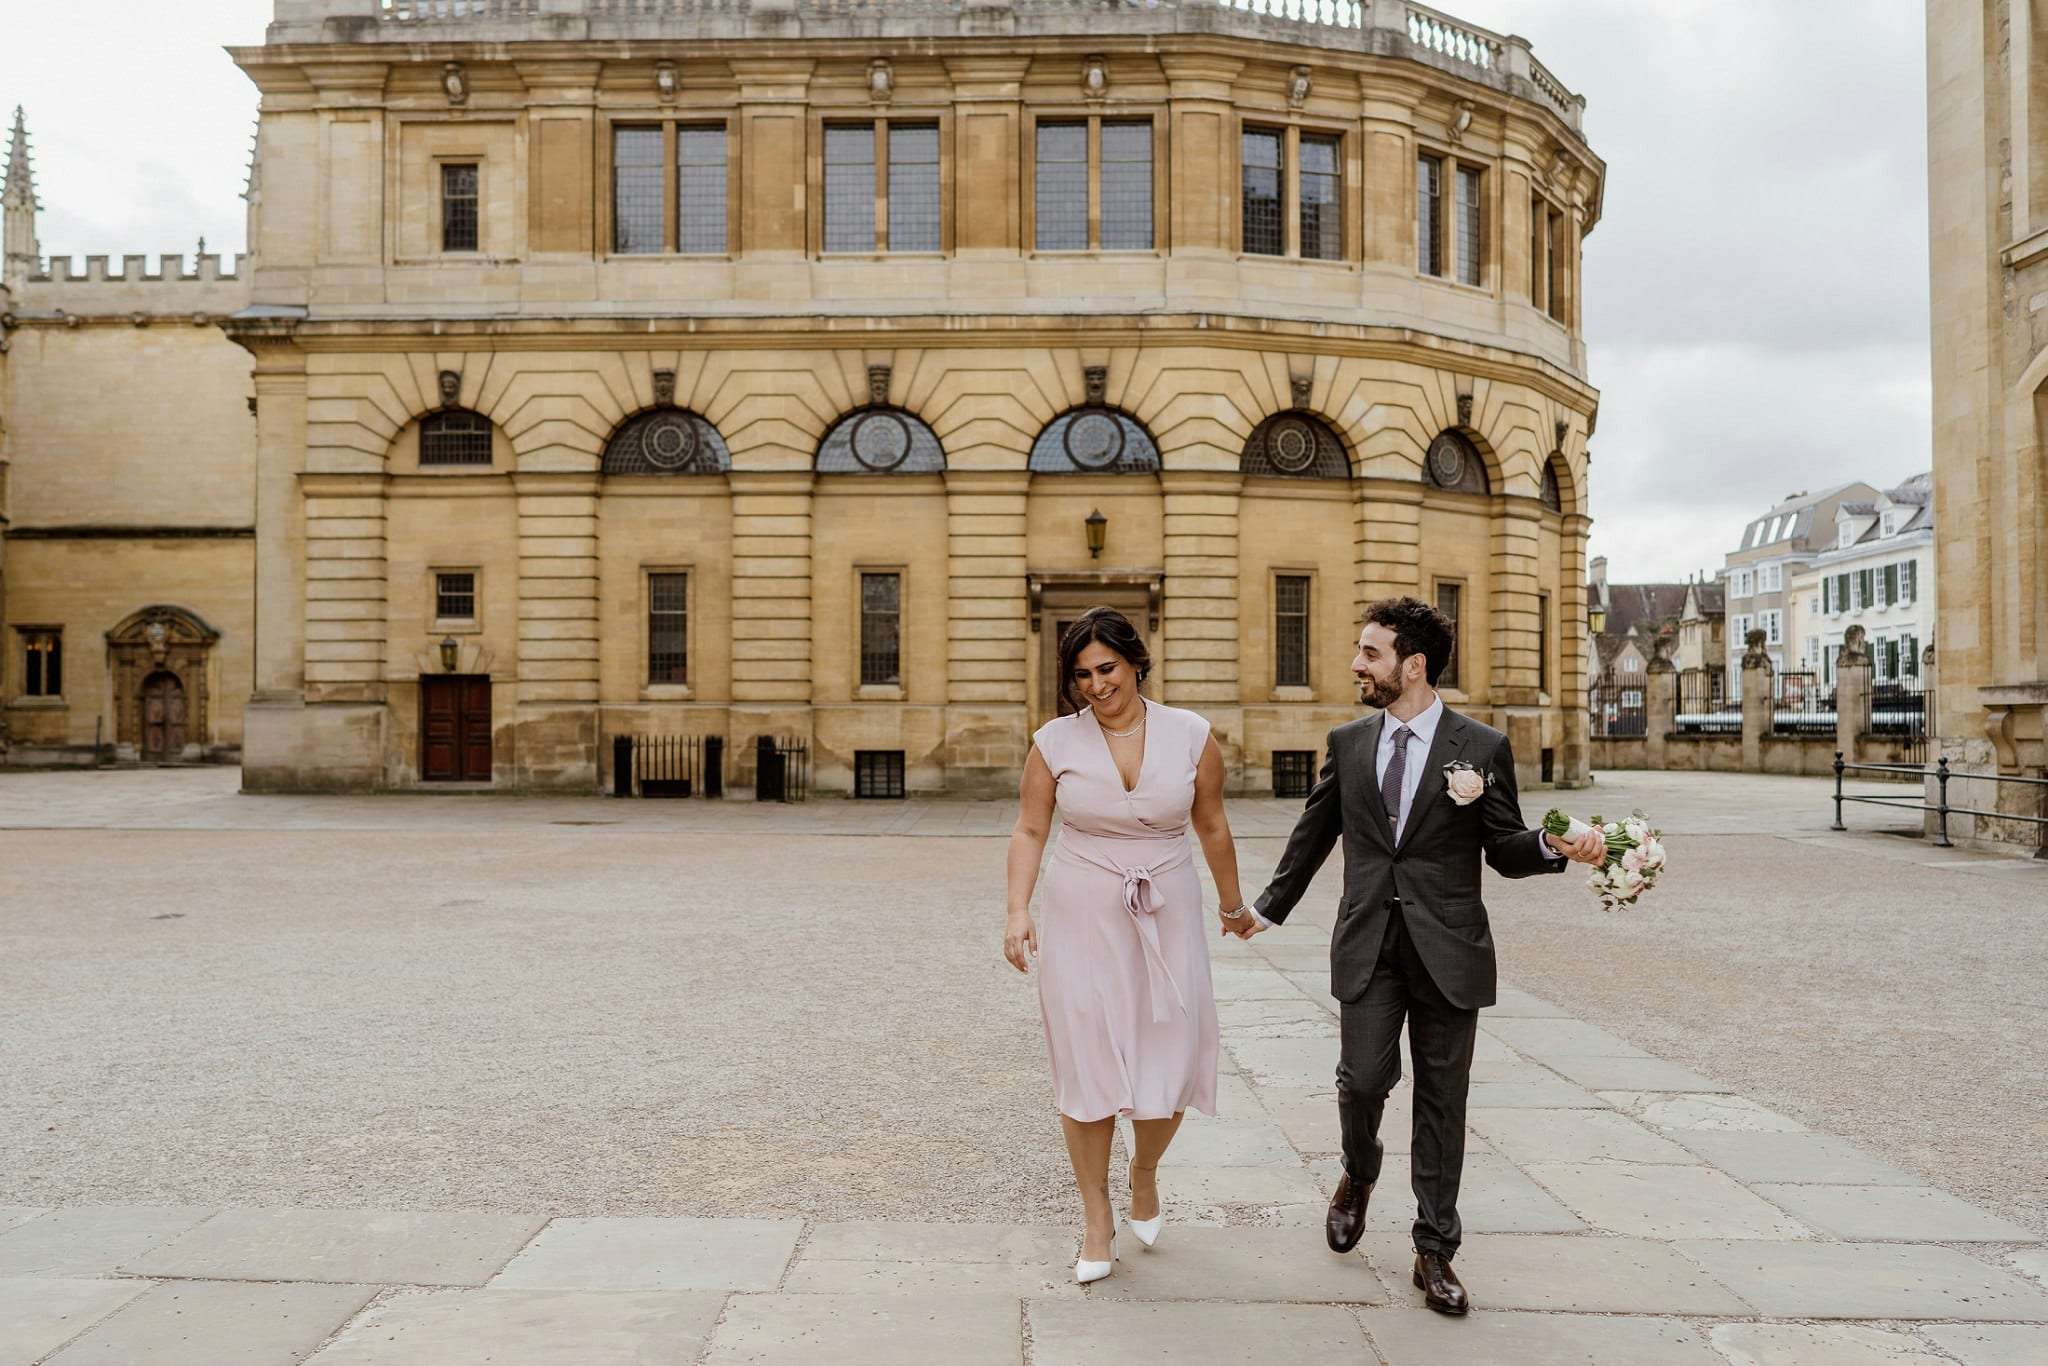 Intimate wedding in Oxford